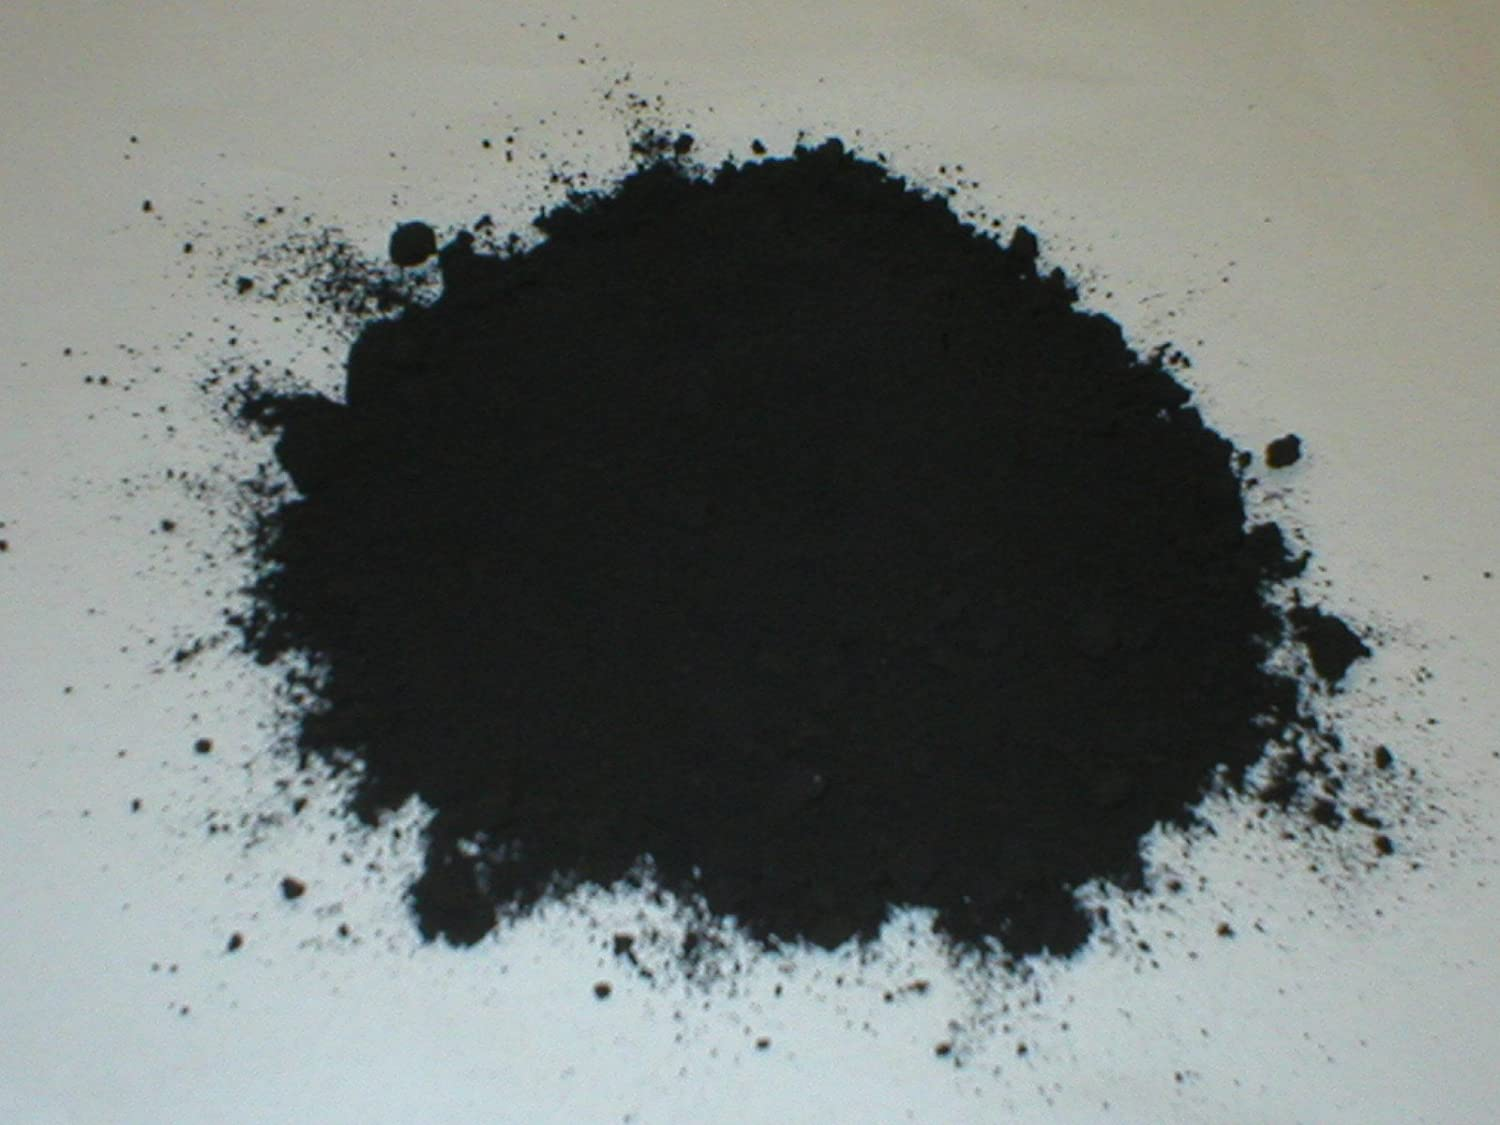 5 Lbs. Department store Black Powdered Color Cement Mortar sold out Concrete Grout for